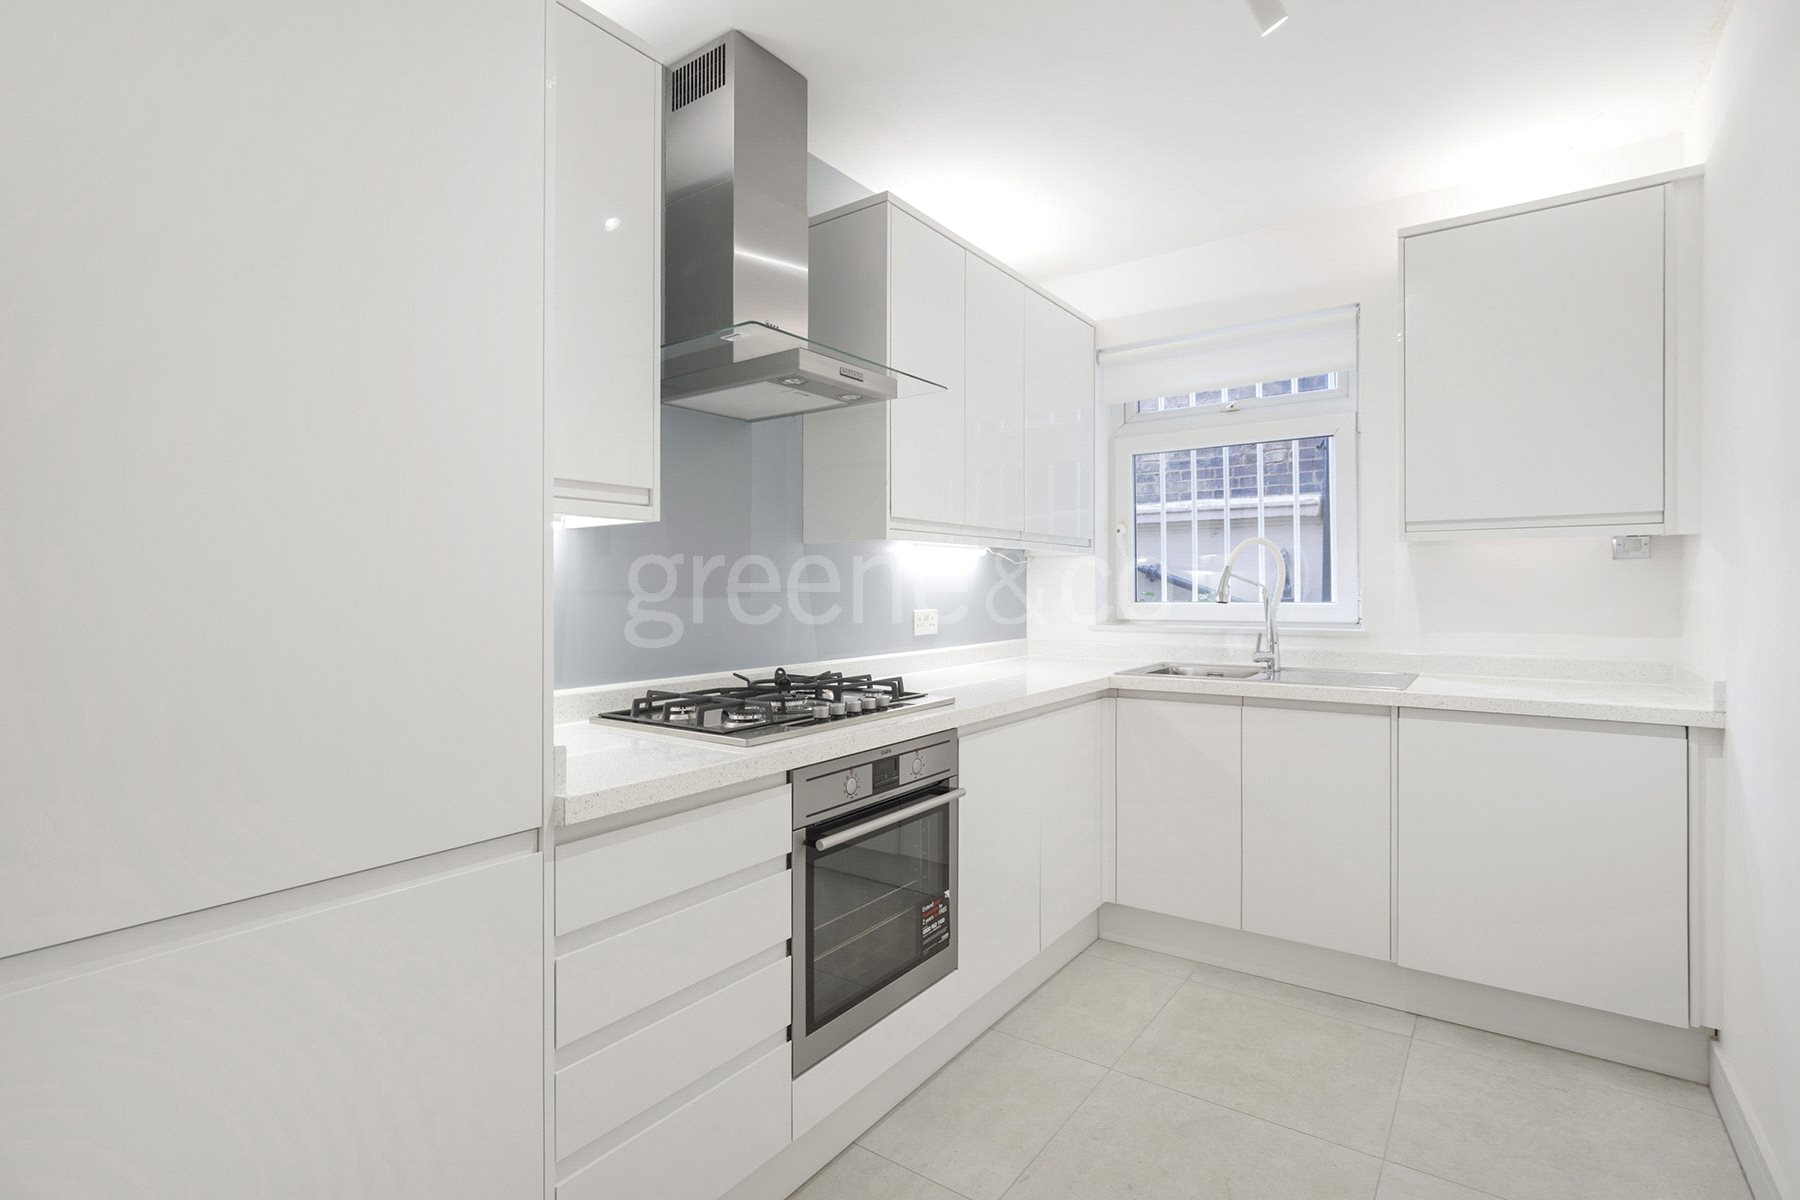 2 Bedrooms Flat for sale in Priory Road, London, NW6